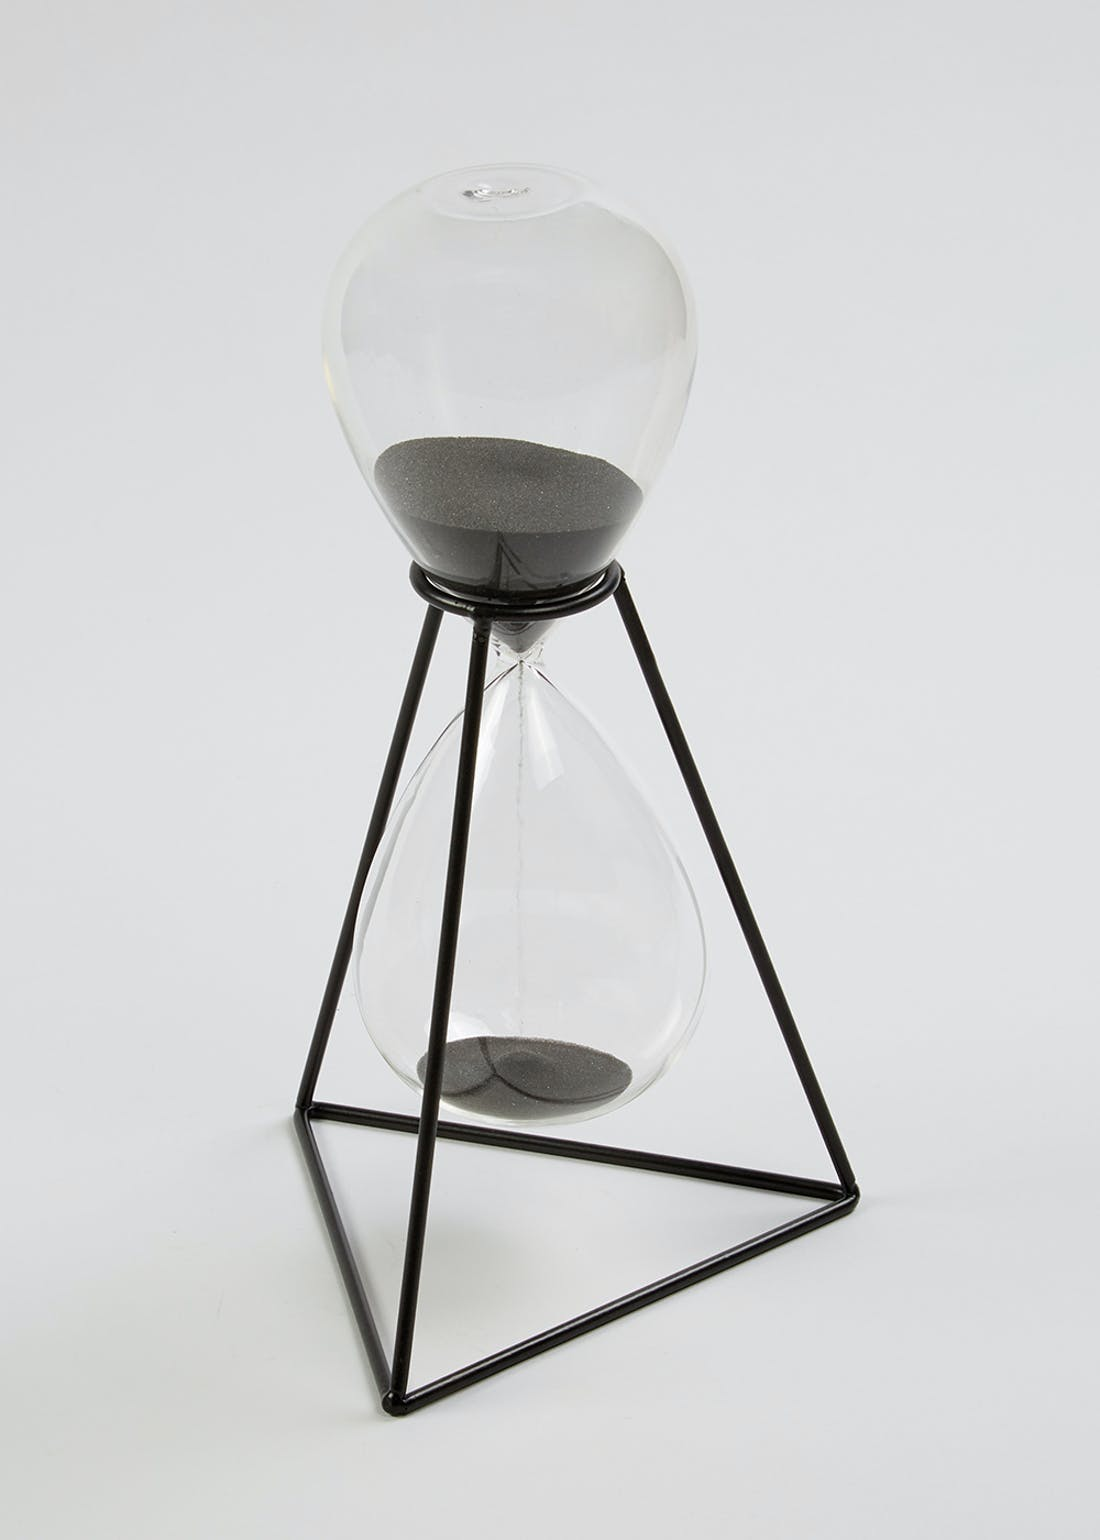 Sand Timer on Stand (30cm x 13cm x 13cm)